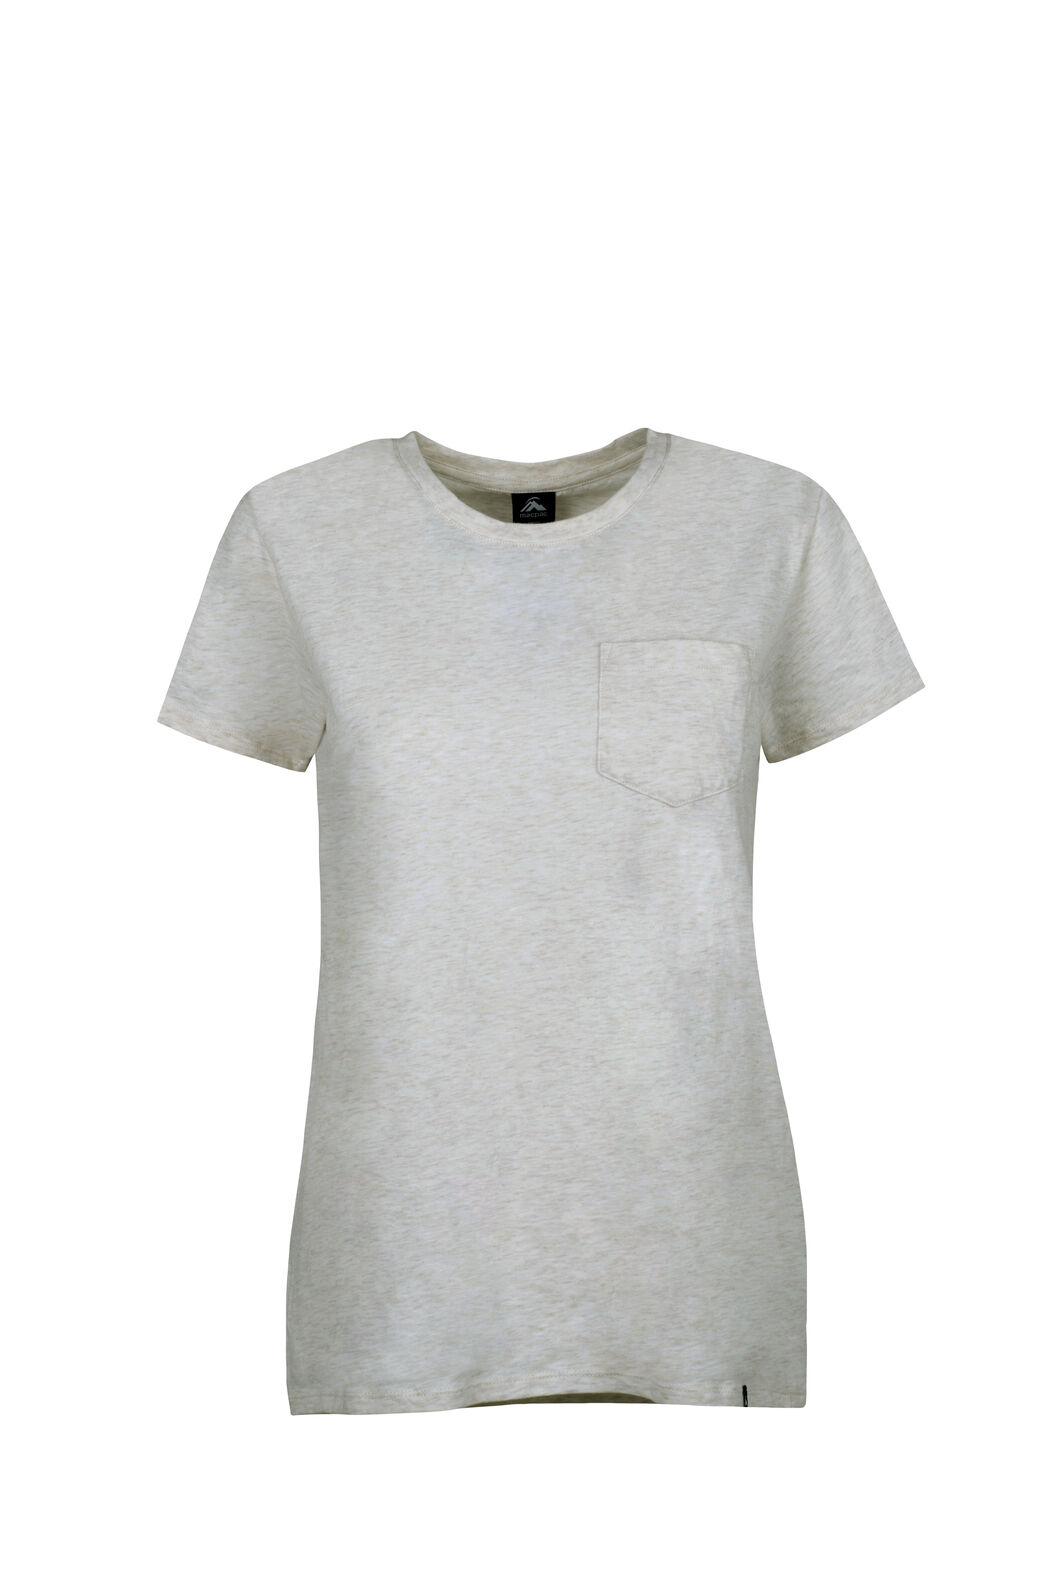 Macpac Pocket Organic Cotton Tee - Women's, Oat Marle, hi-res